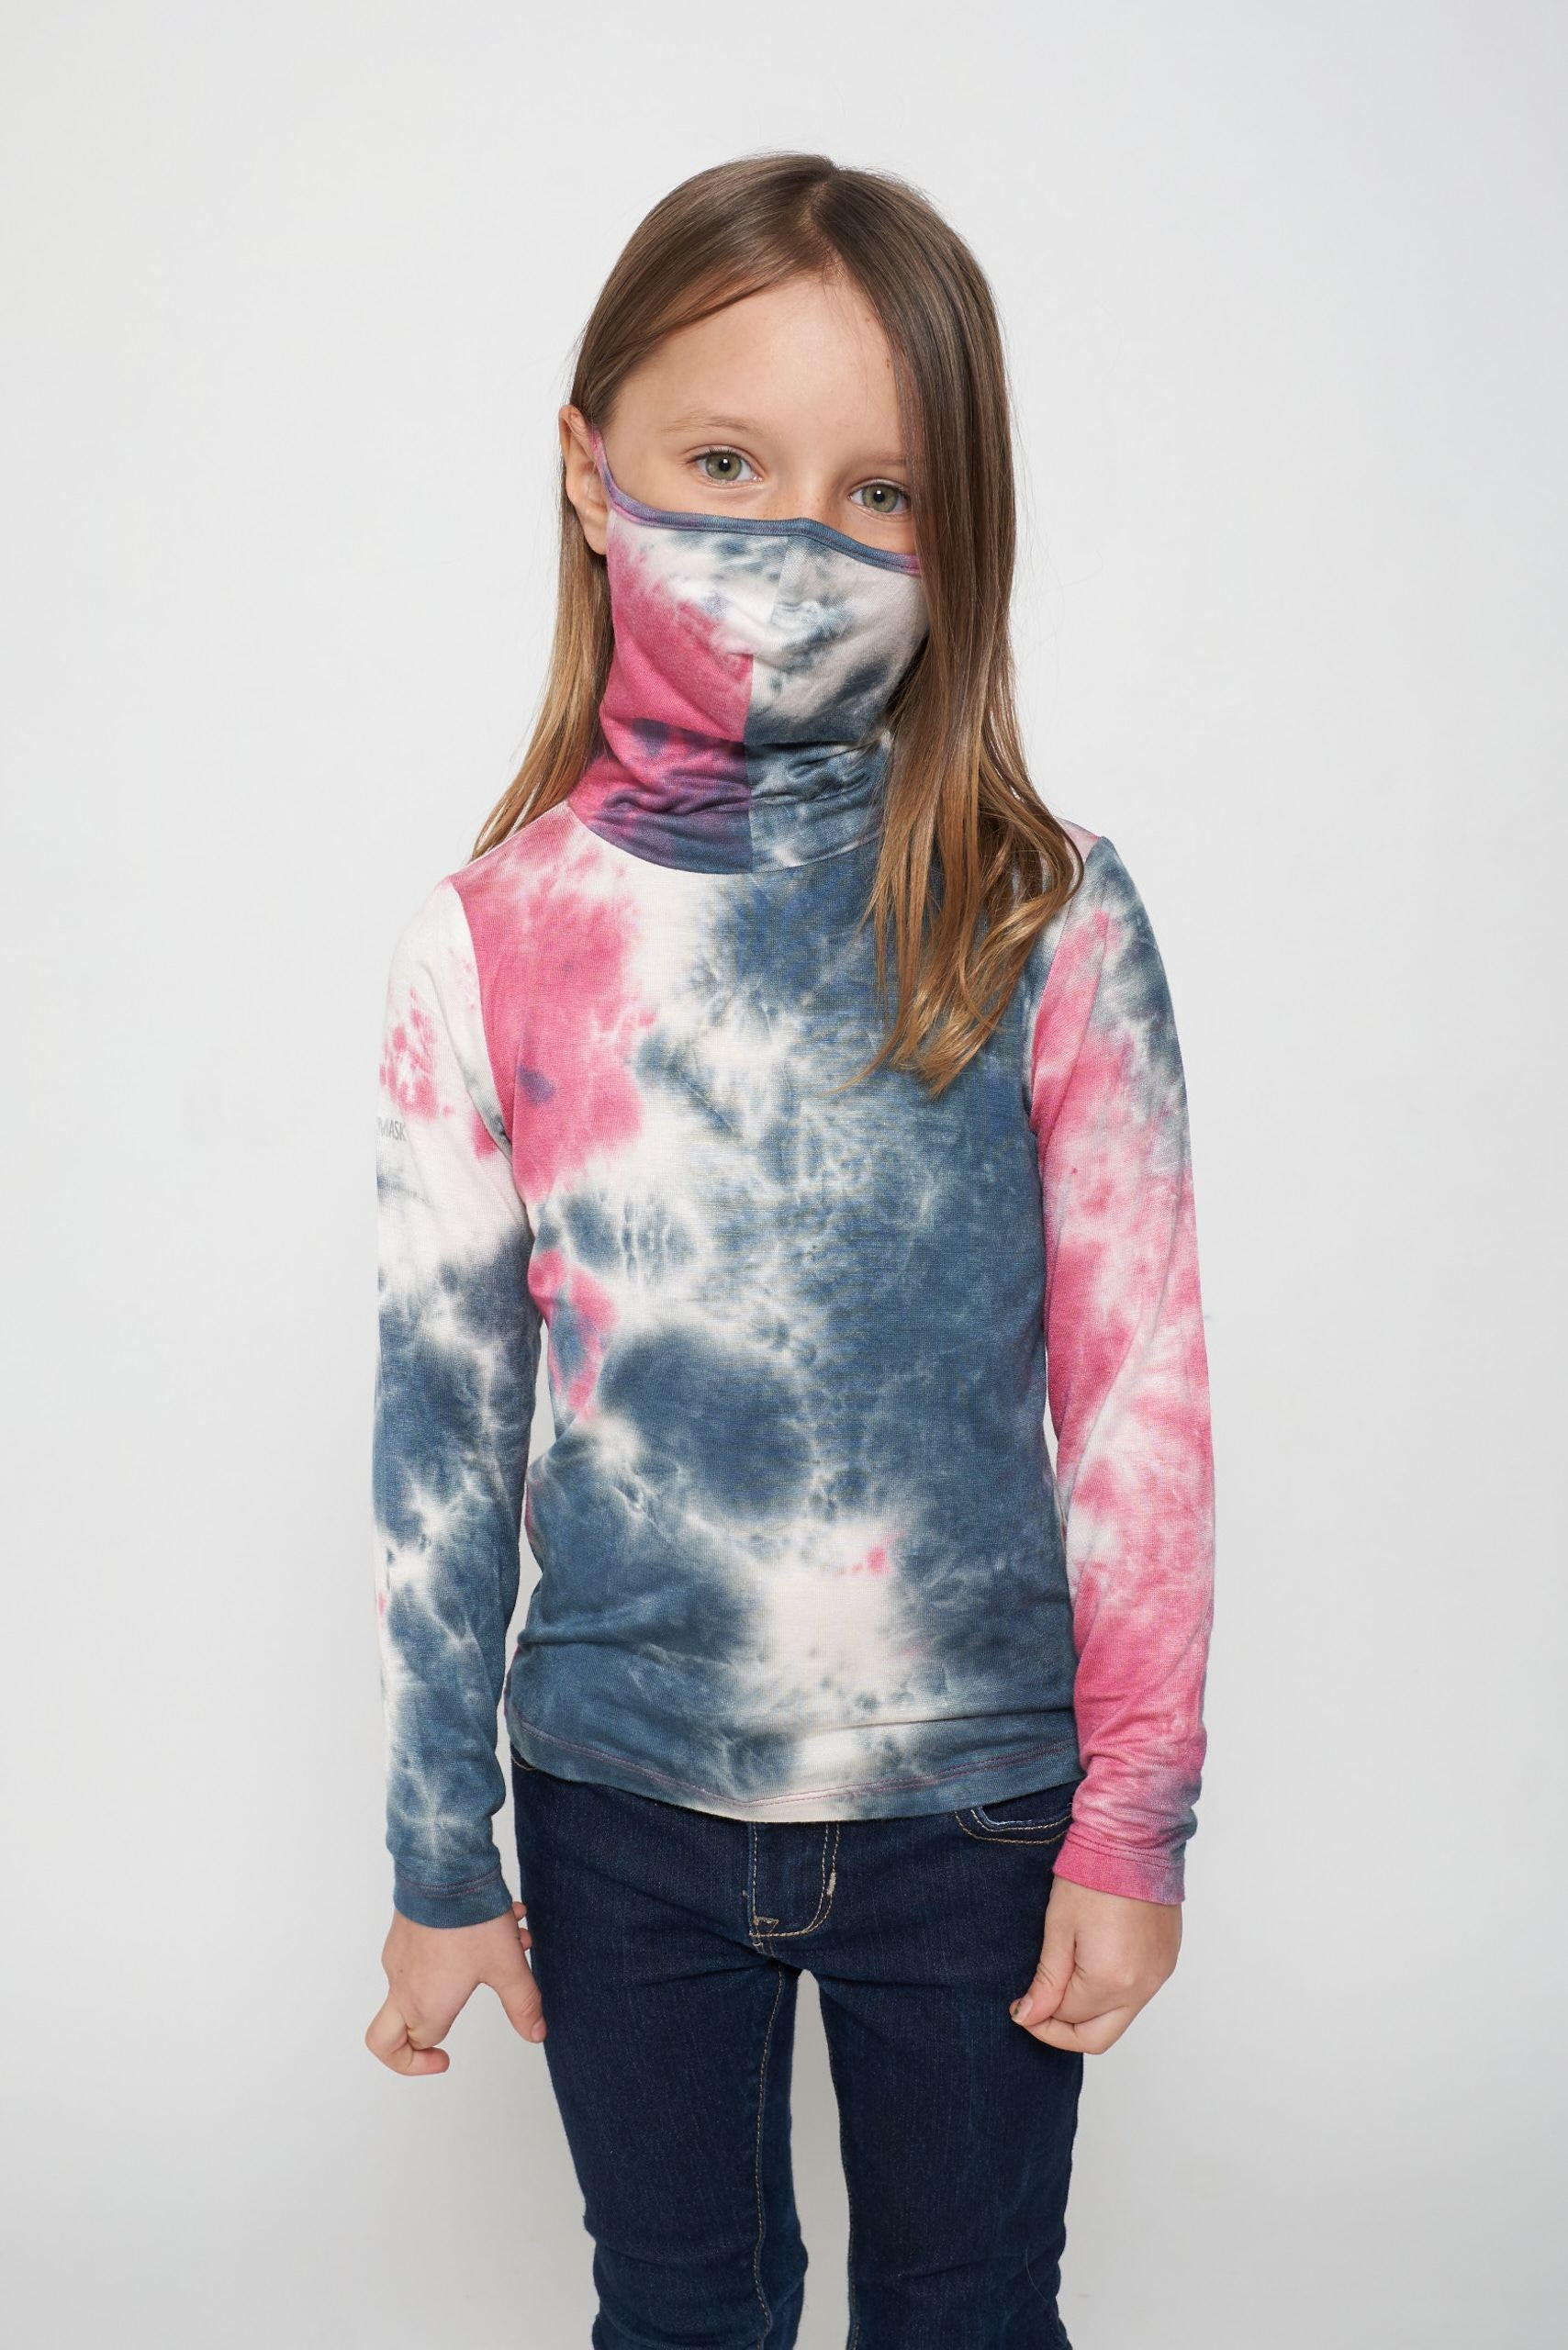 Kids Long Sleeve Pink White Tie-dye #9 Shmask™ Earloop Face Mask for Kids and Adults